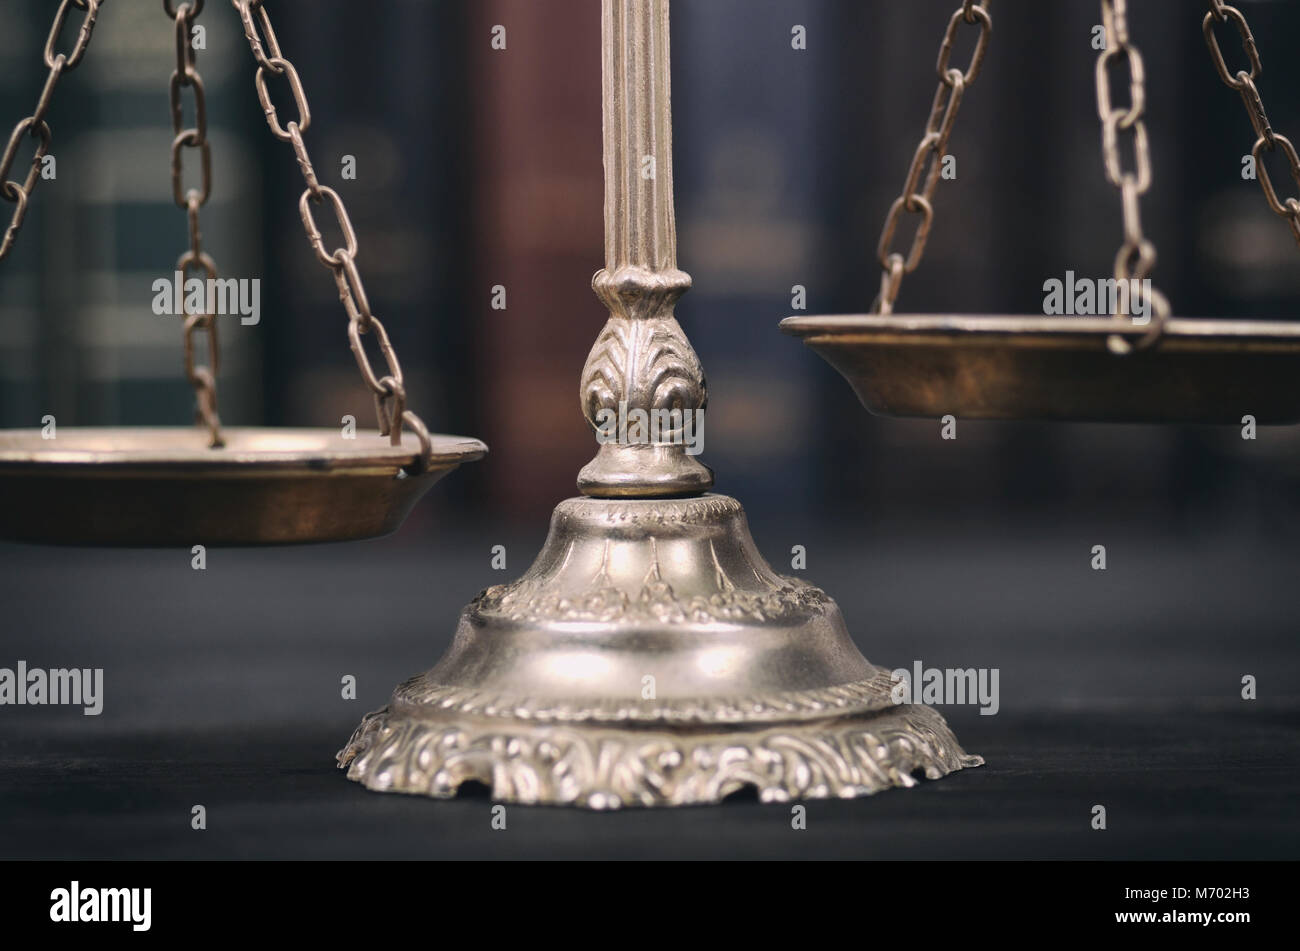 Law and Justice, Legality concept, Scales of Justice on a black wooden background. - Stock Image